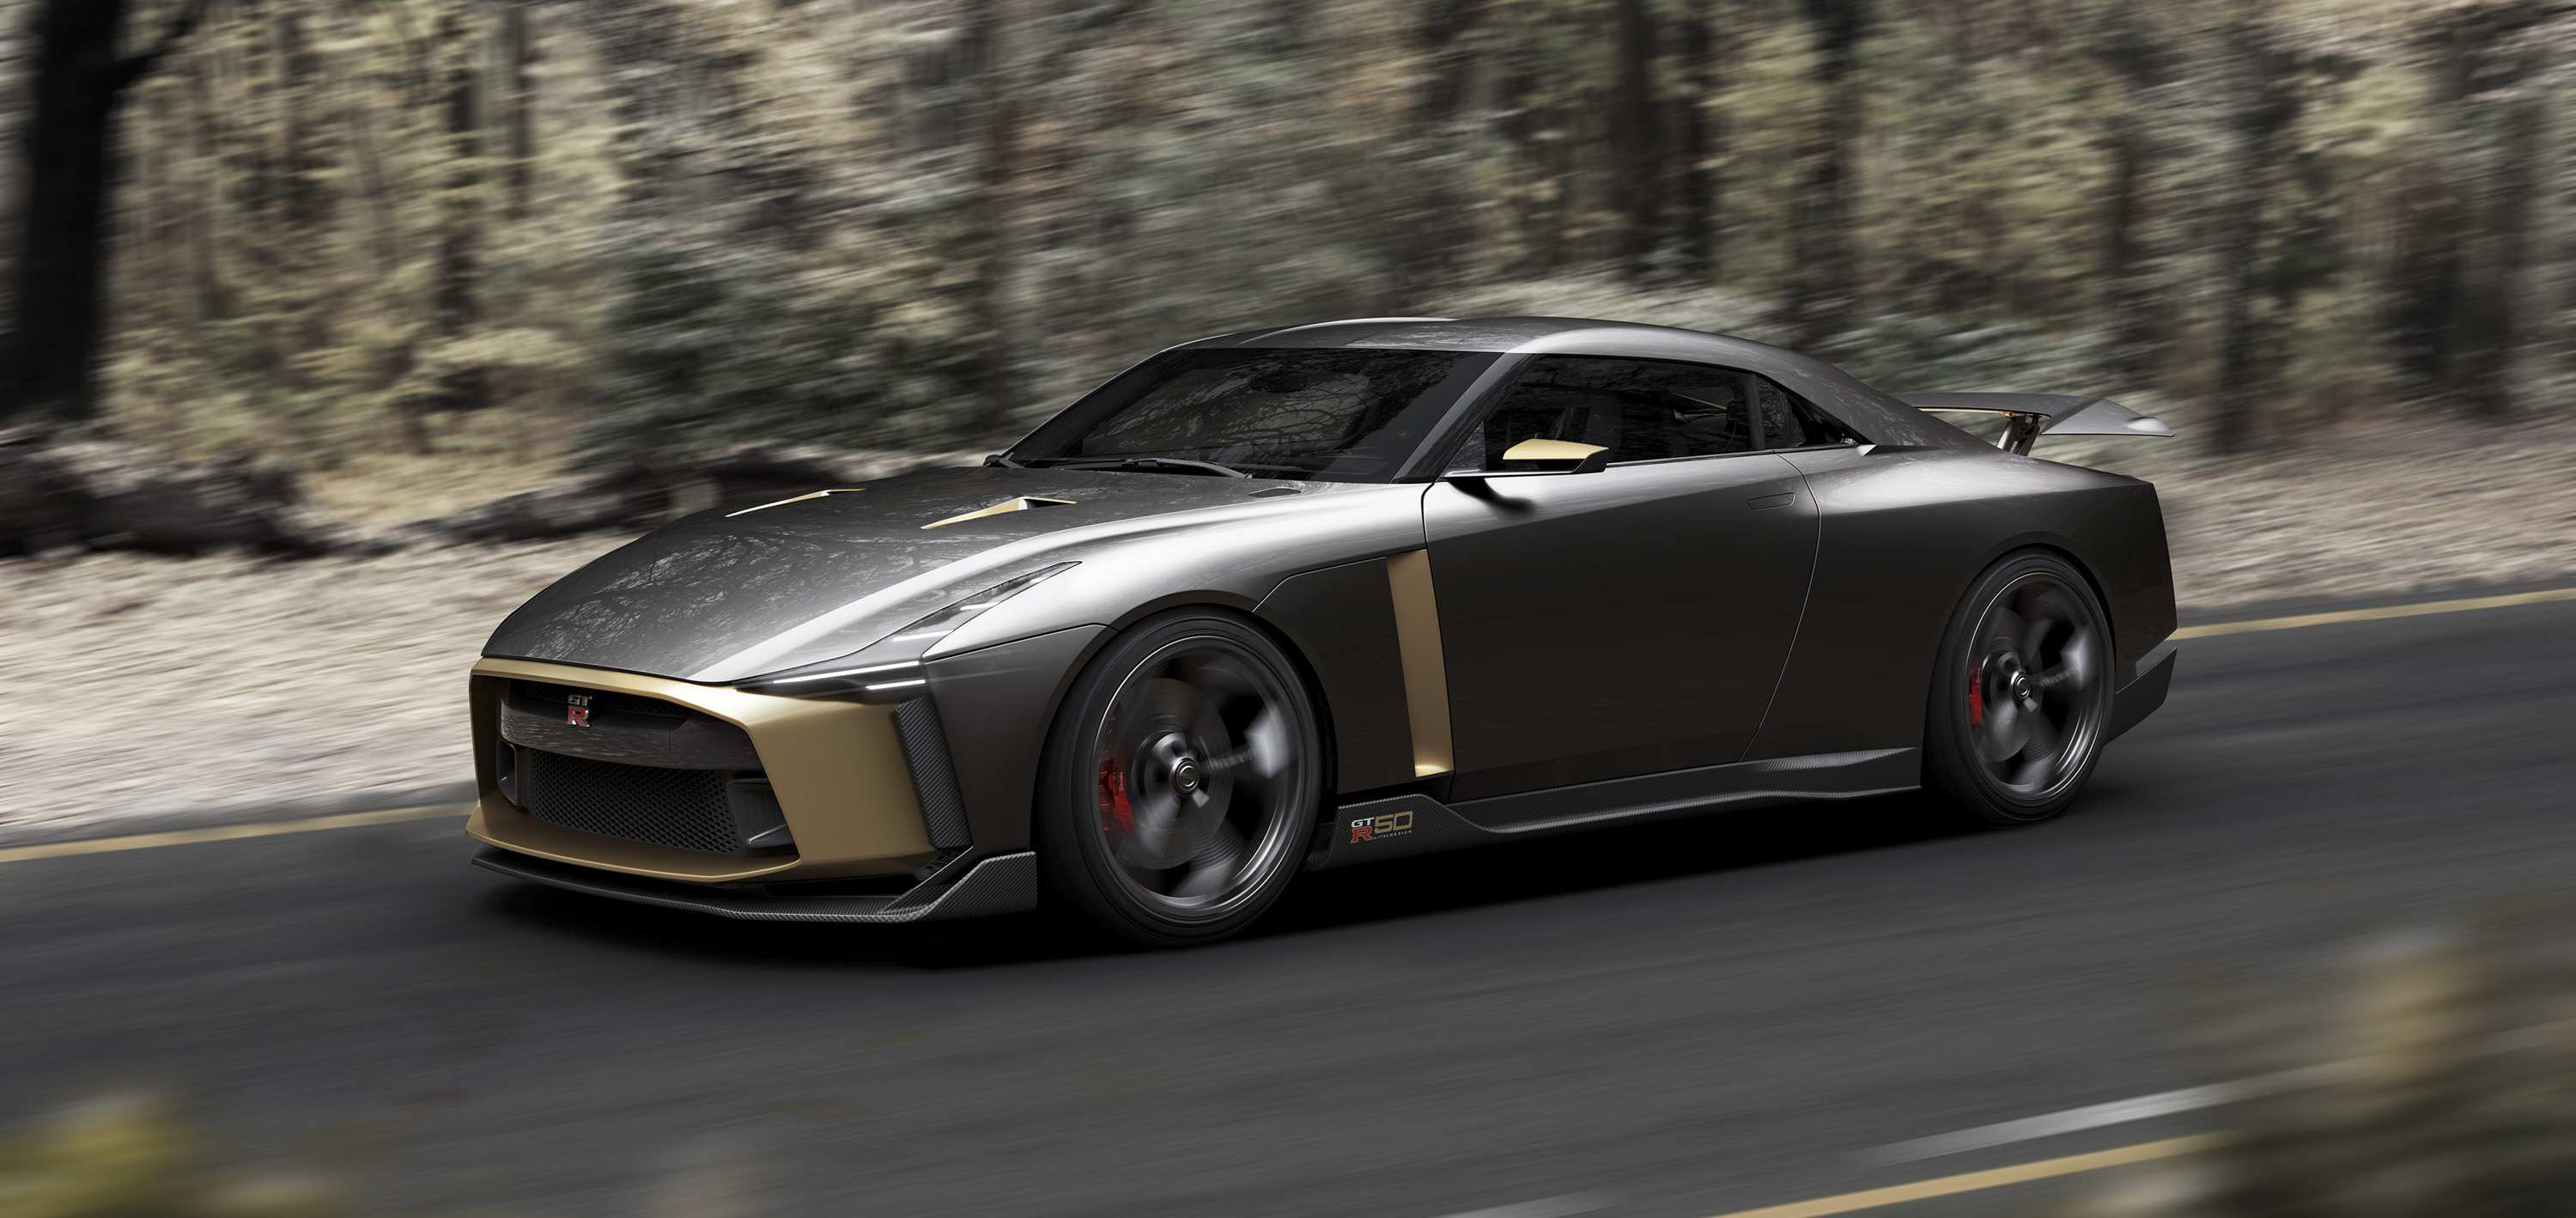 81 Concept of Nissan Gtr R36 Concept 2020 First Drive for Nissan Gtr R36 Concept 2020